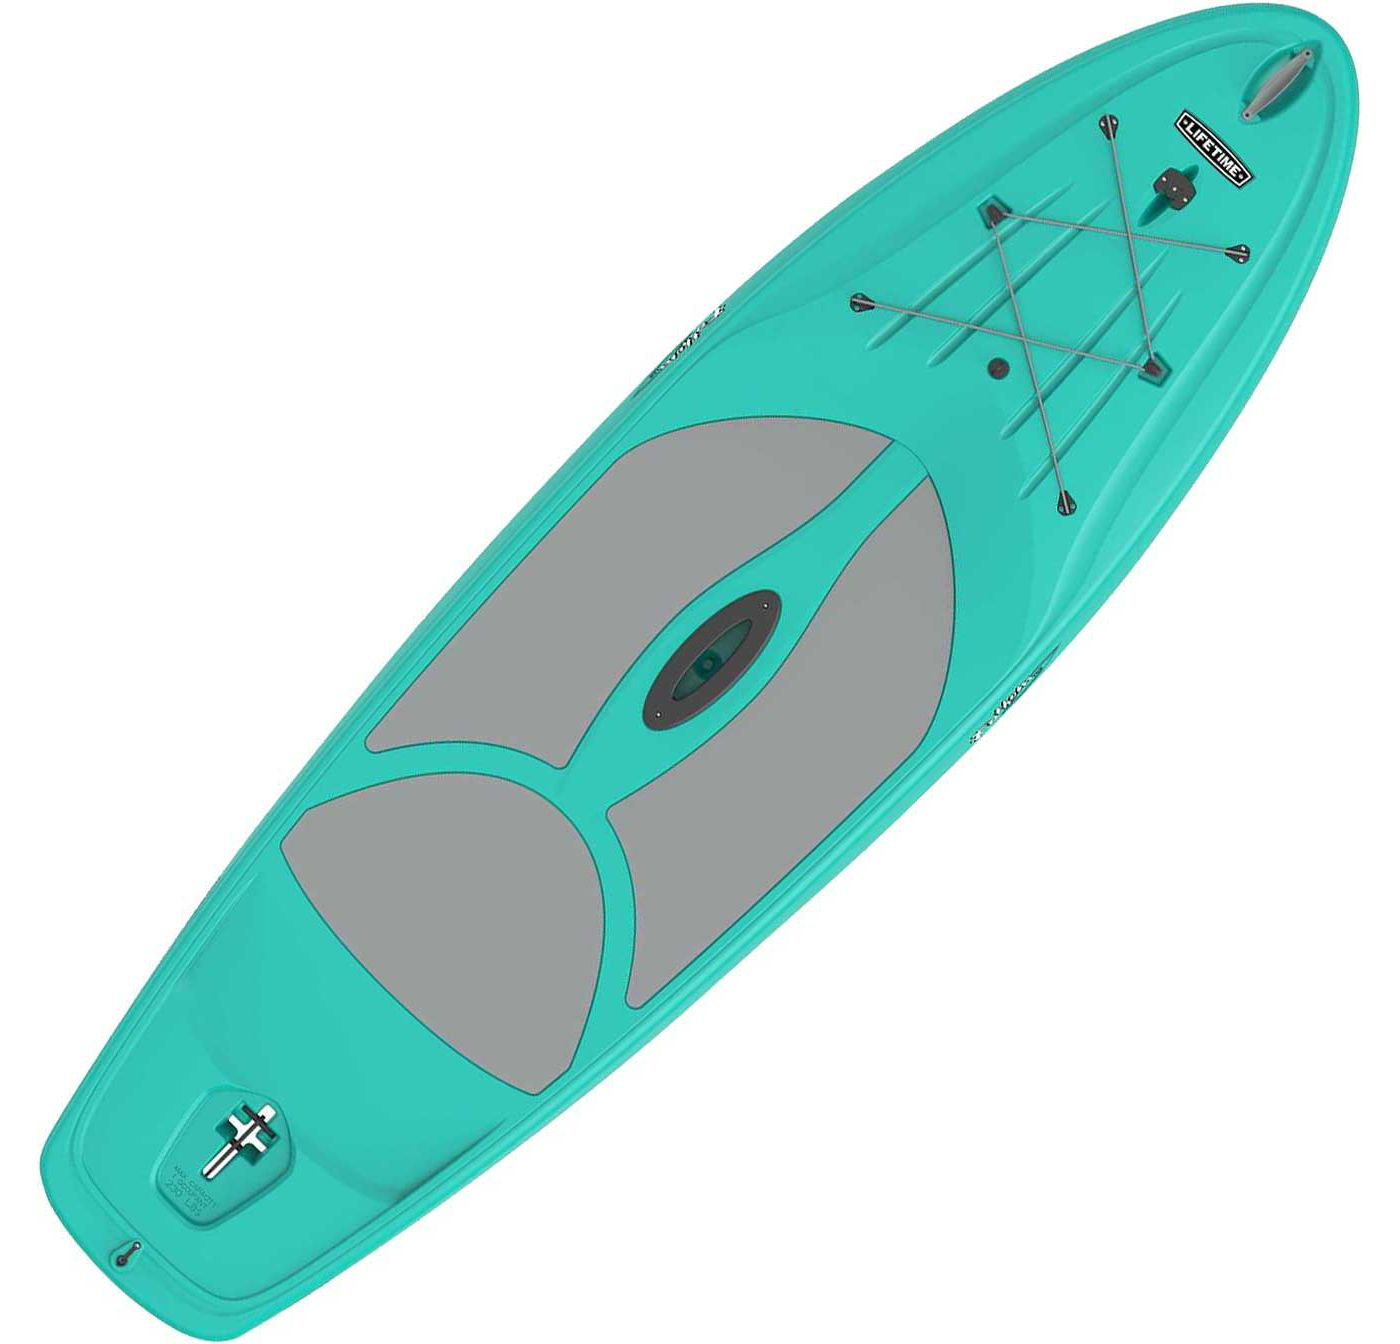 Lifetime Fathom 10 Stand-Up Paddle Board